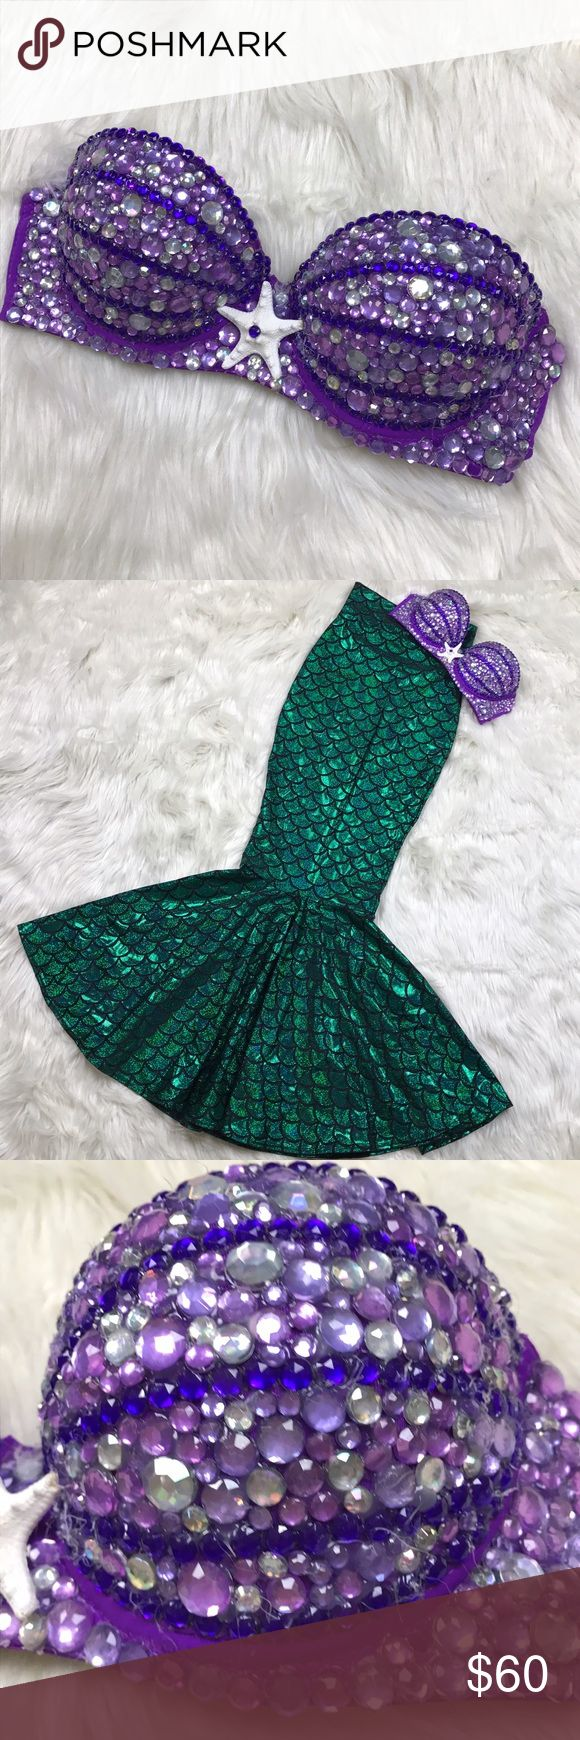 Mermaid Rave Festival EDC Bra Strapless Push Up Handmade. Some minor hot glue in-between the jewels. Straps are included without embellishments. Intimates & Sleepwear Bras